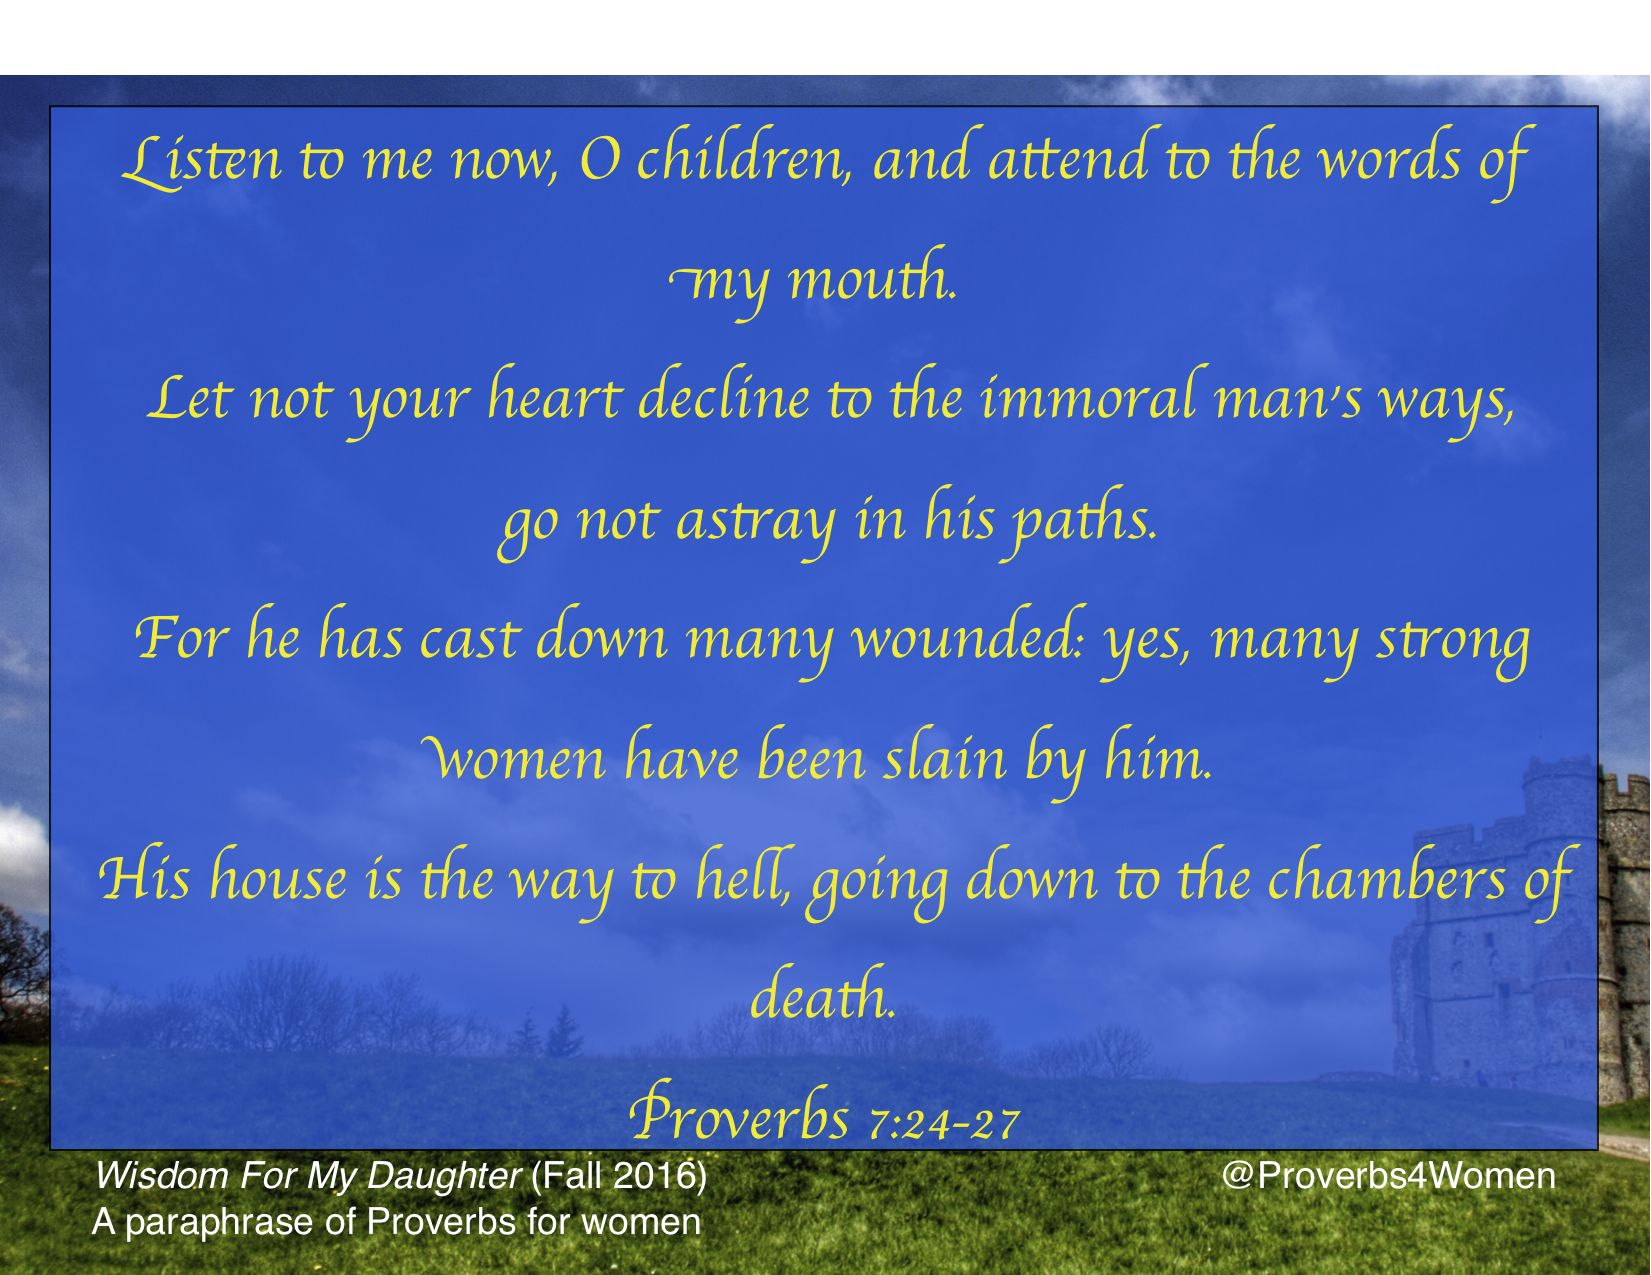 Proverb 7 24 27 Wisdom Flee The Immoral Book Of Words Paraphrase For My Daughter